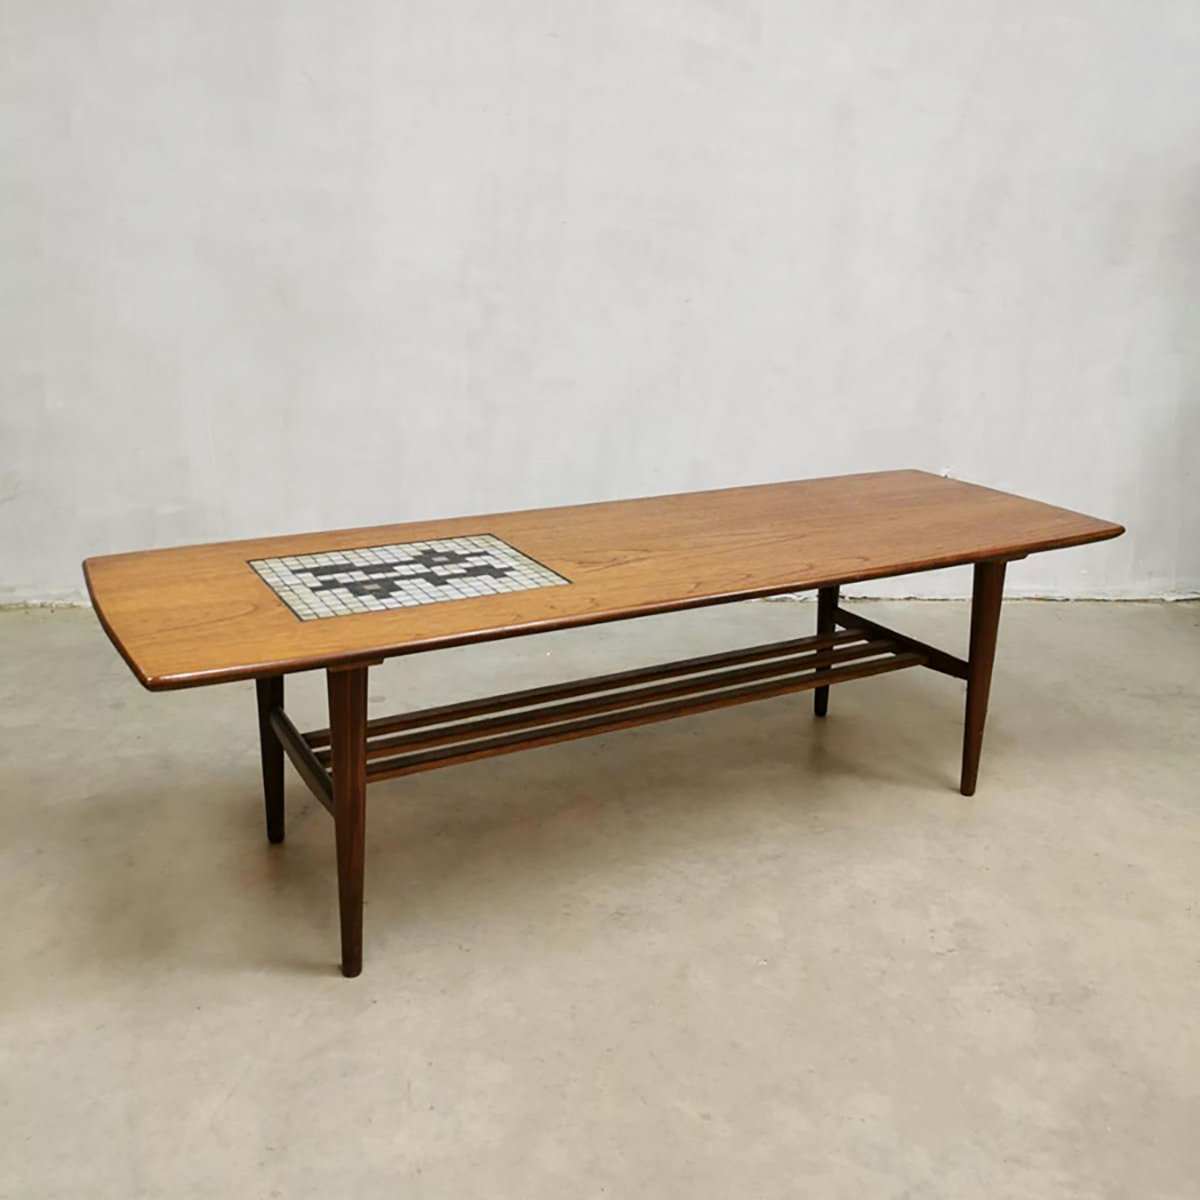 - Vintage Tile Coffee Table By Louis Van Teeffelen & Jaap Ravelli